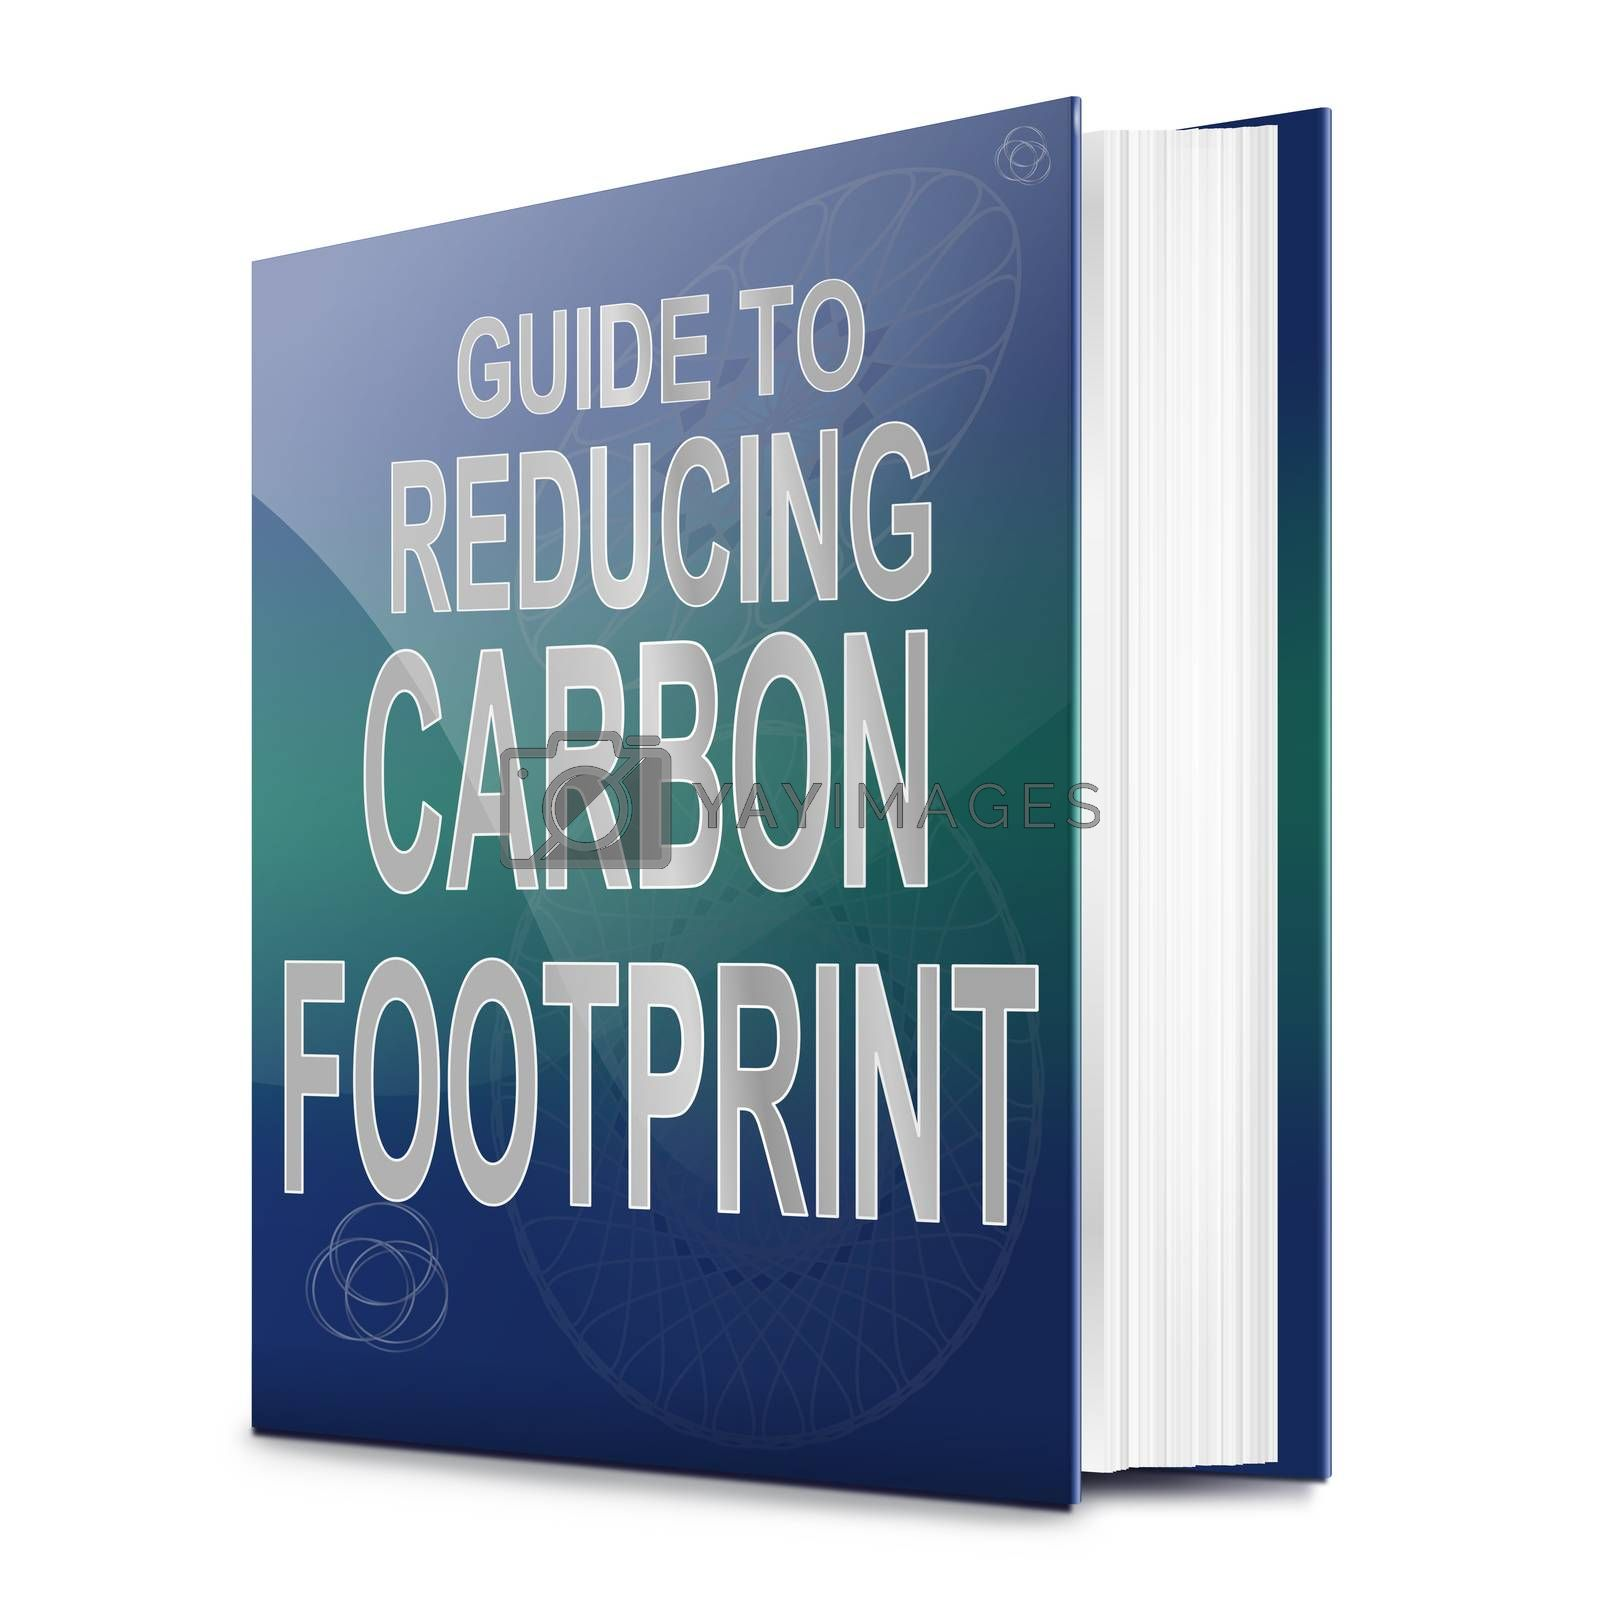 Illustration depicting a text book with a carbon footprint concept title. White background.